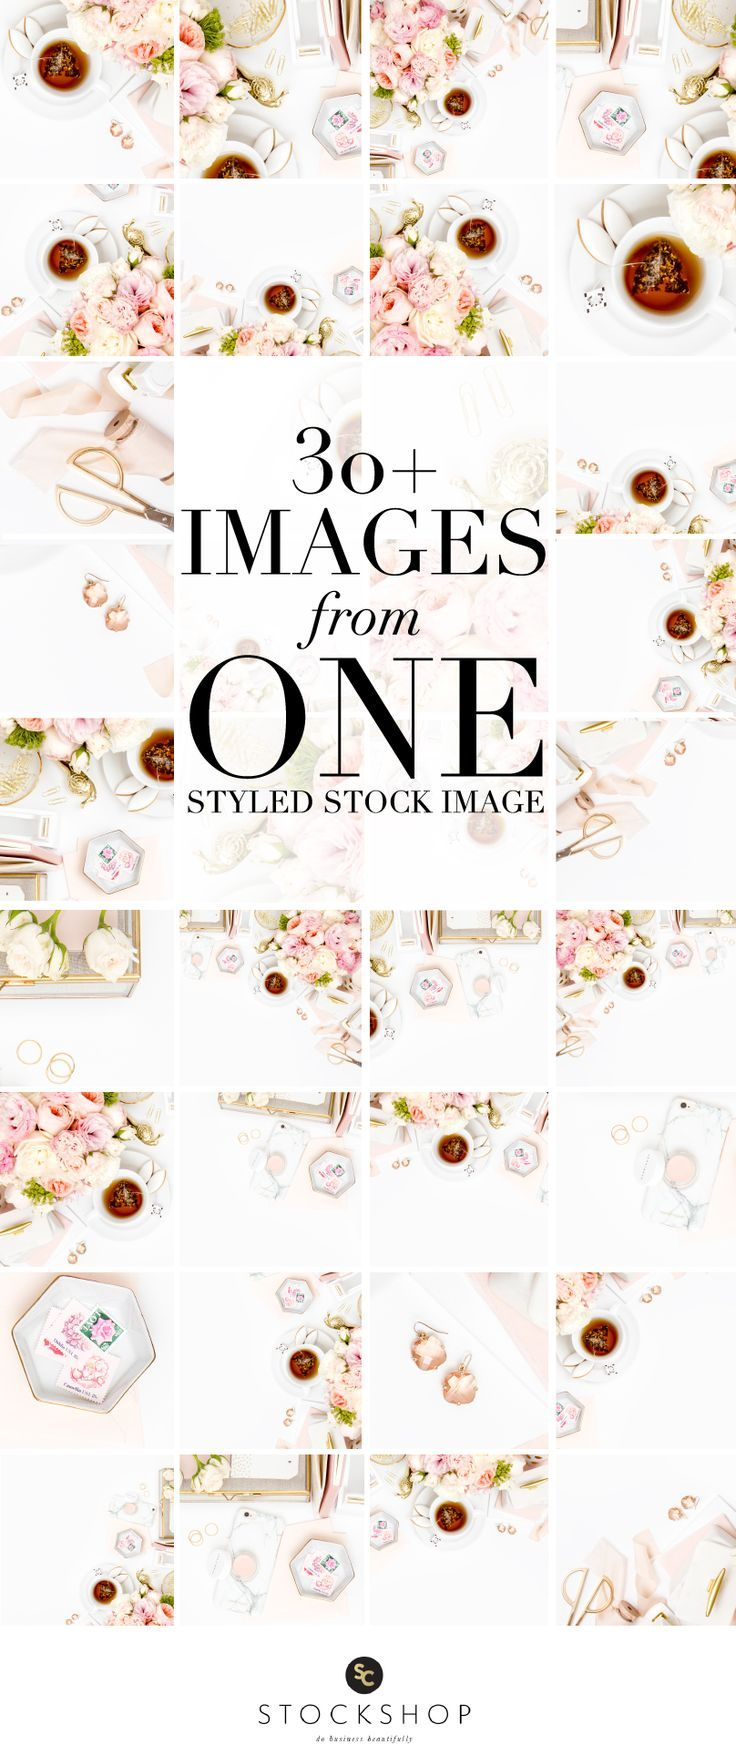 Learn how to use styled stock photography!  Create 30+ Instagram images from a single styled stock image!  Blush pink and gold desktop image collection.